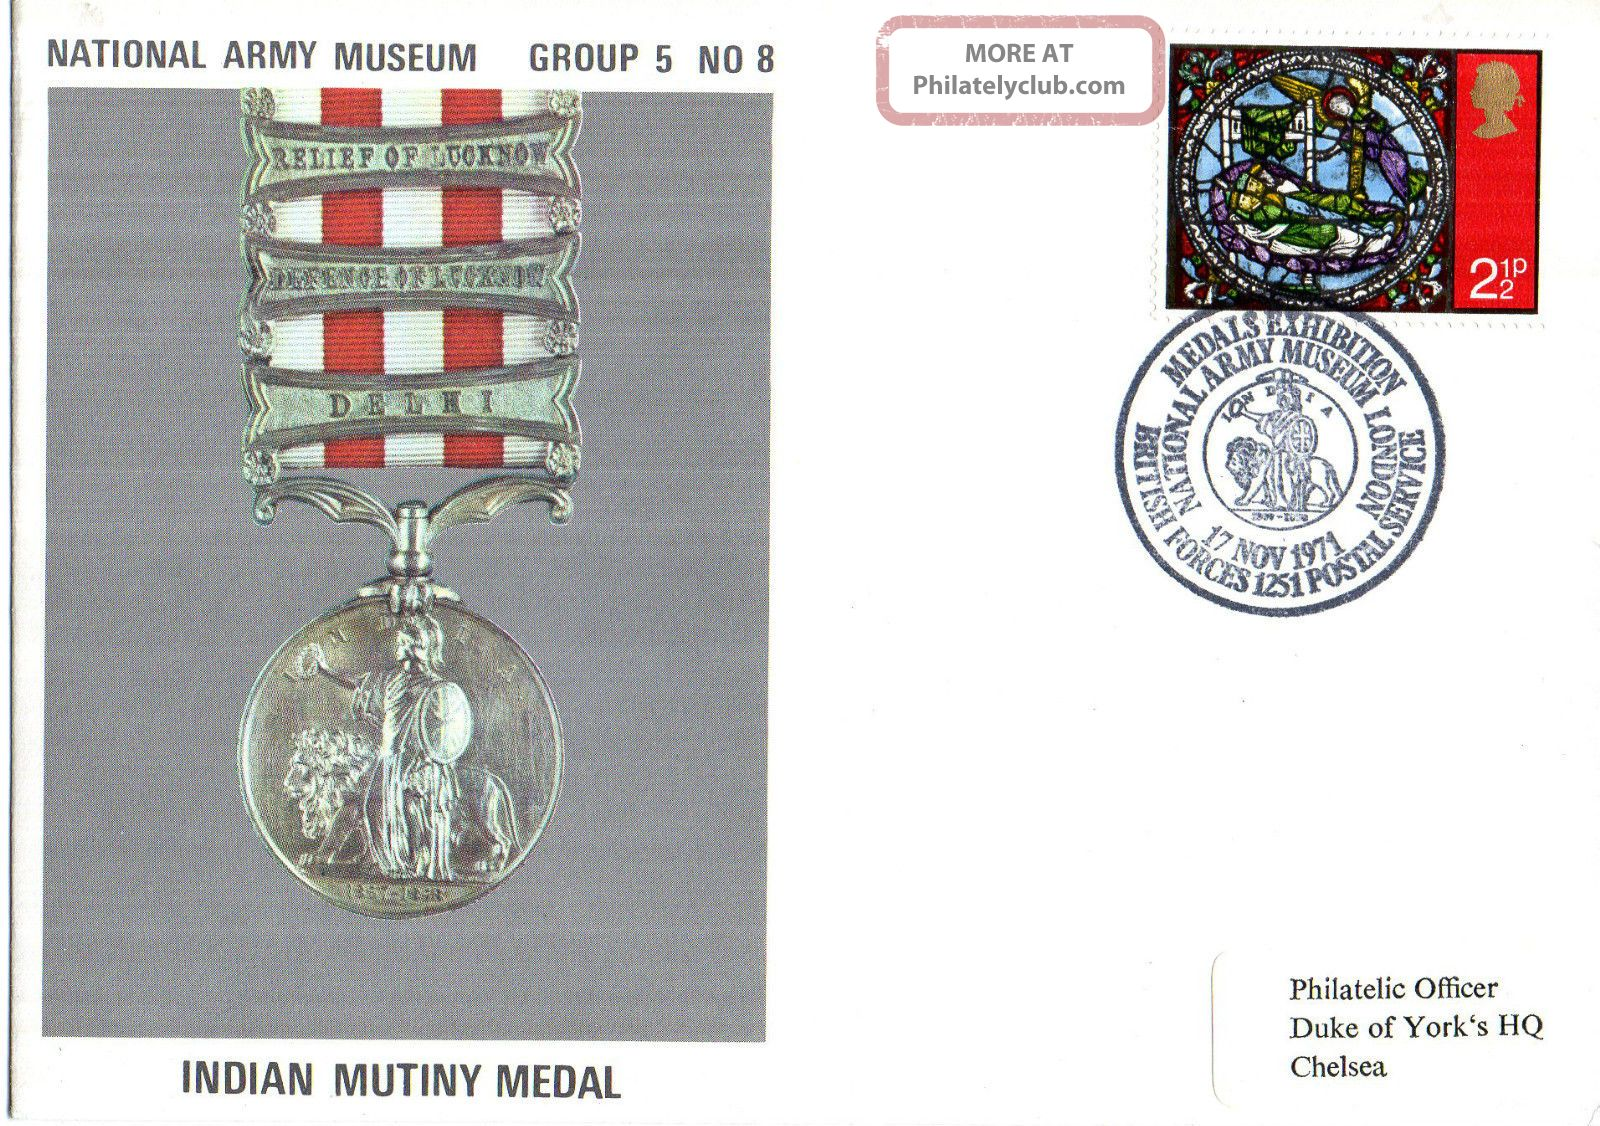 1971 Indian Mutiny Medal 5/8 Army Museum Commemorative Cover Shs Topical Stamps photo